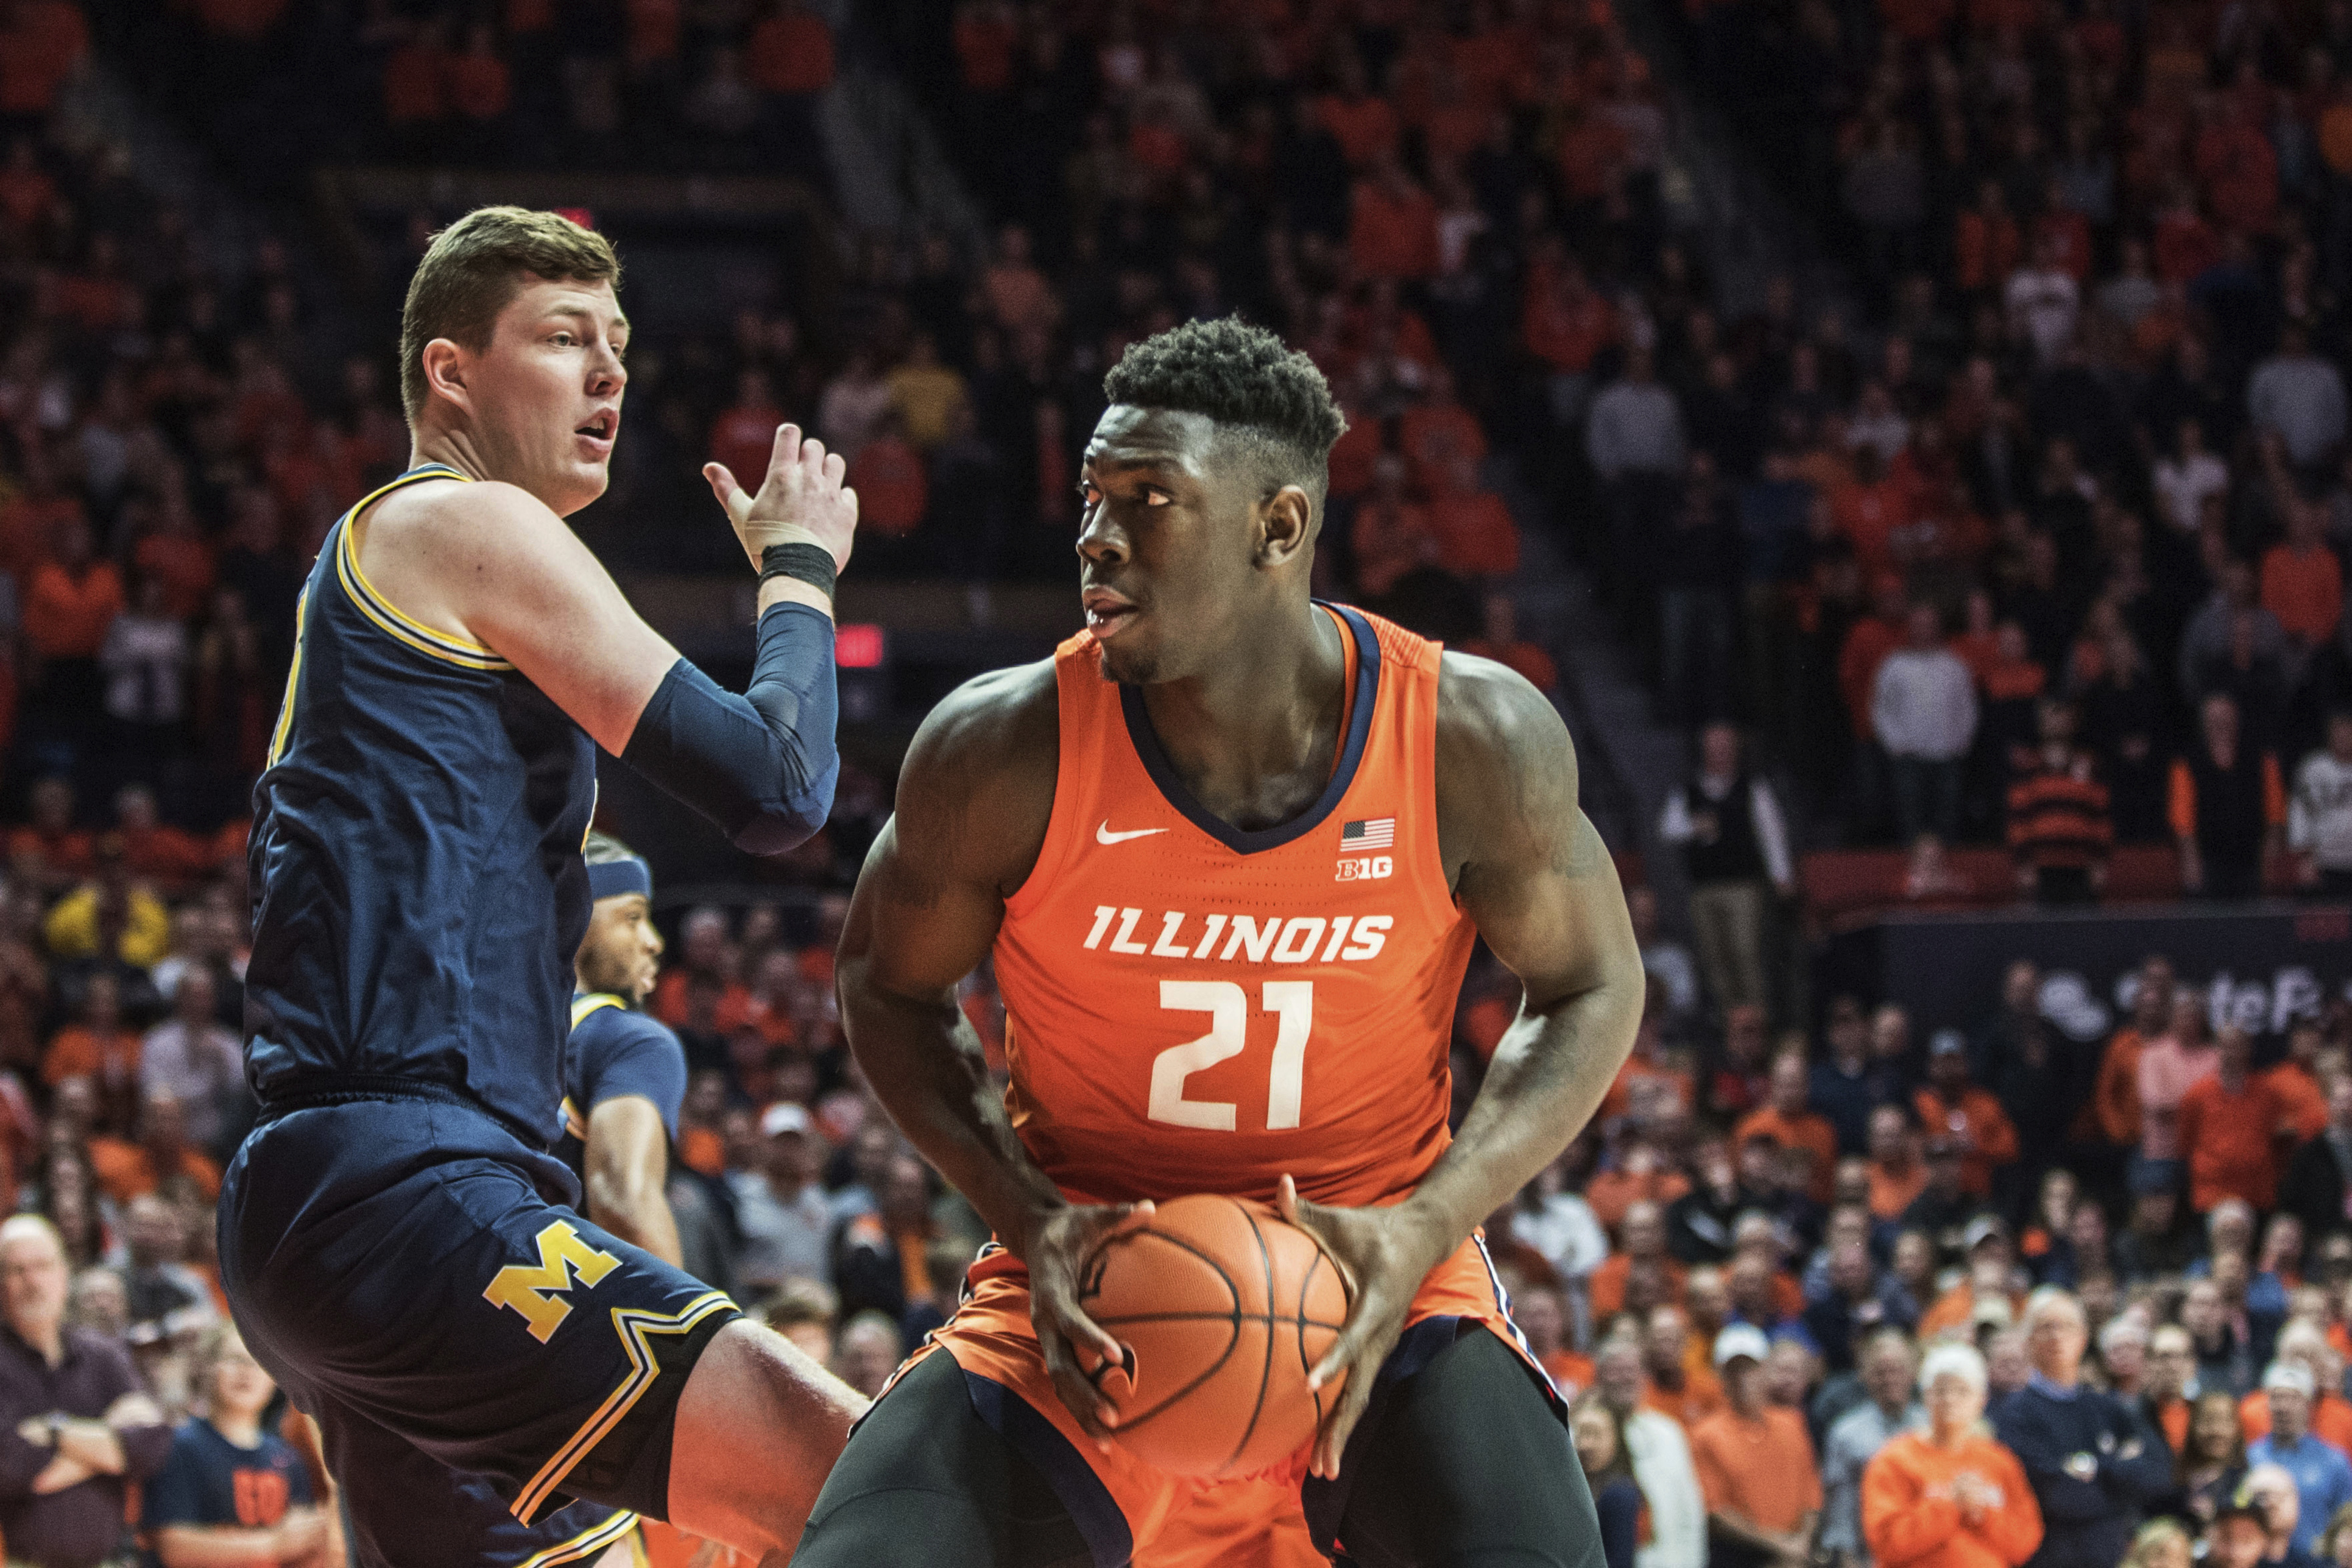 Illinois' Kofi Cockburn looks to shoot as Michigan's Jon Teske defends during the Illini's win over the Wolverines Wednesday in Champaign.